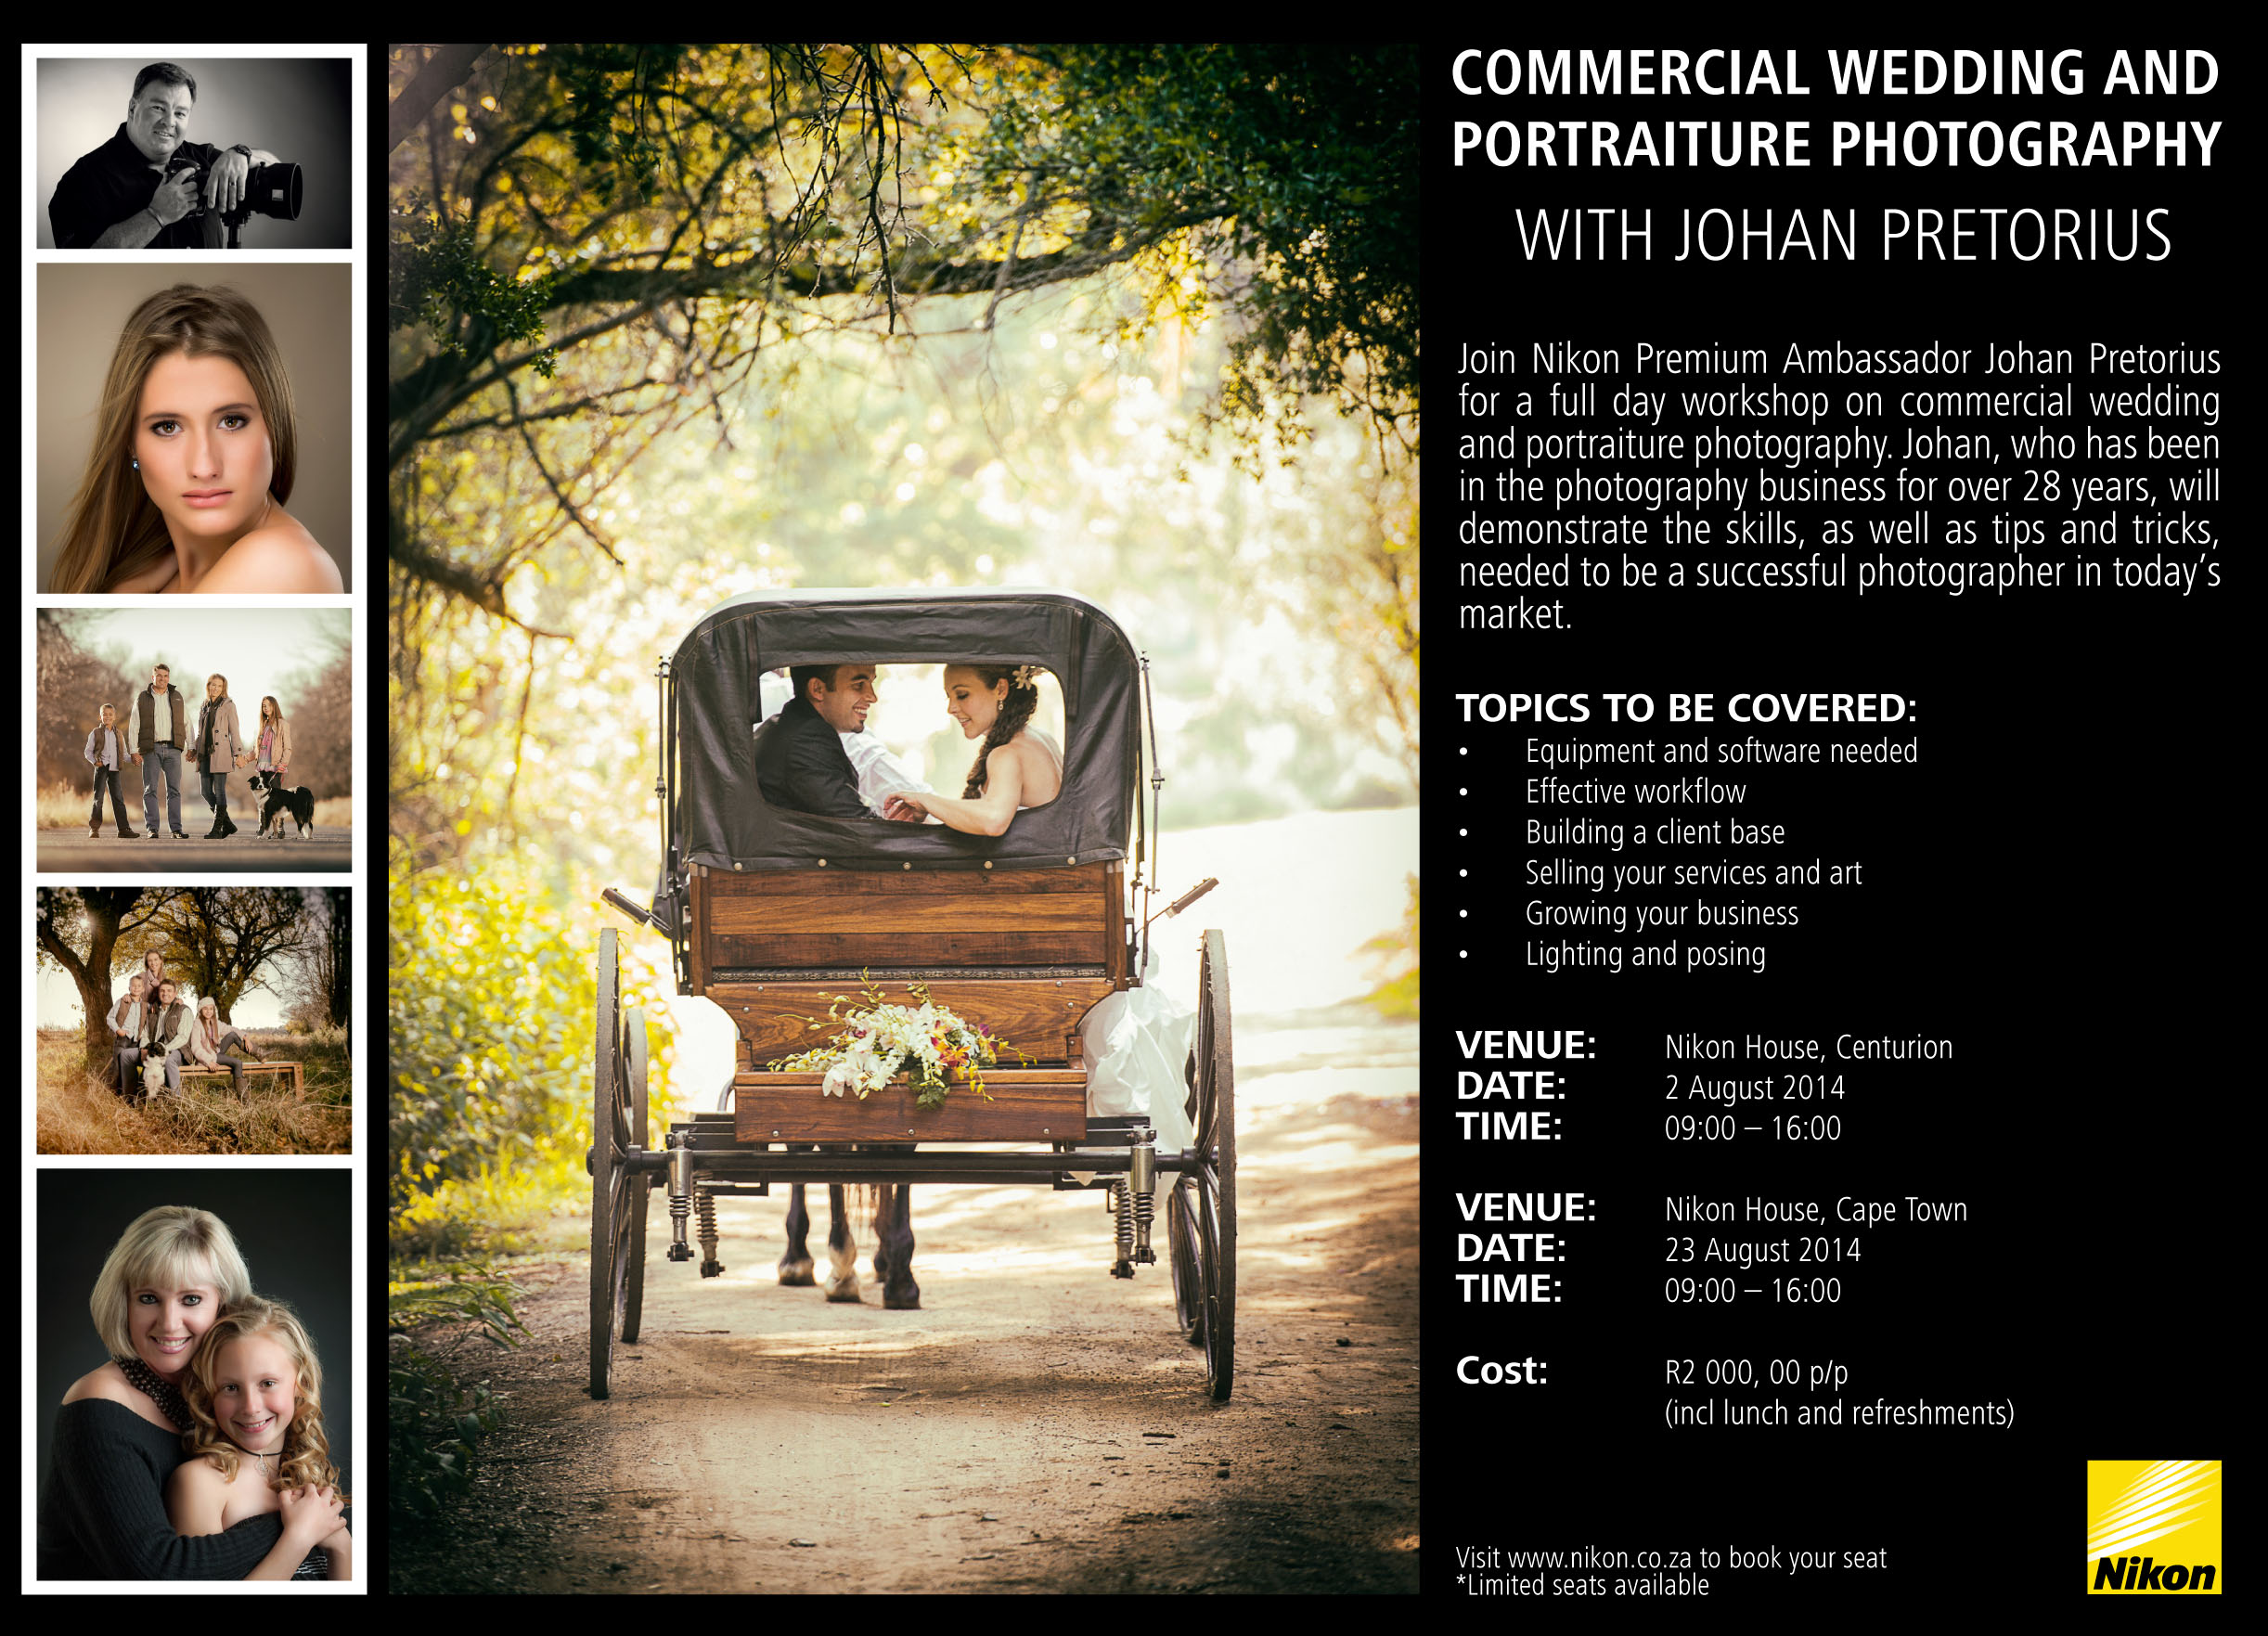 Workshop for photographers